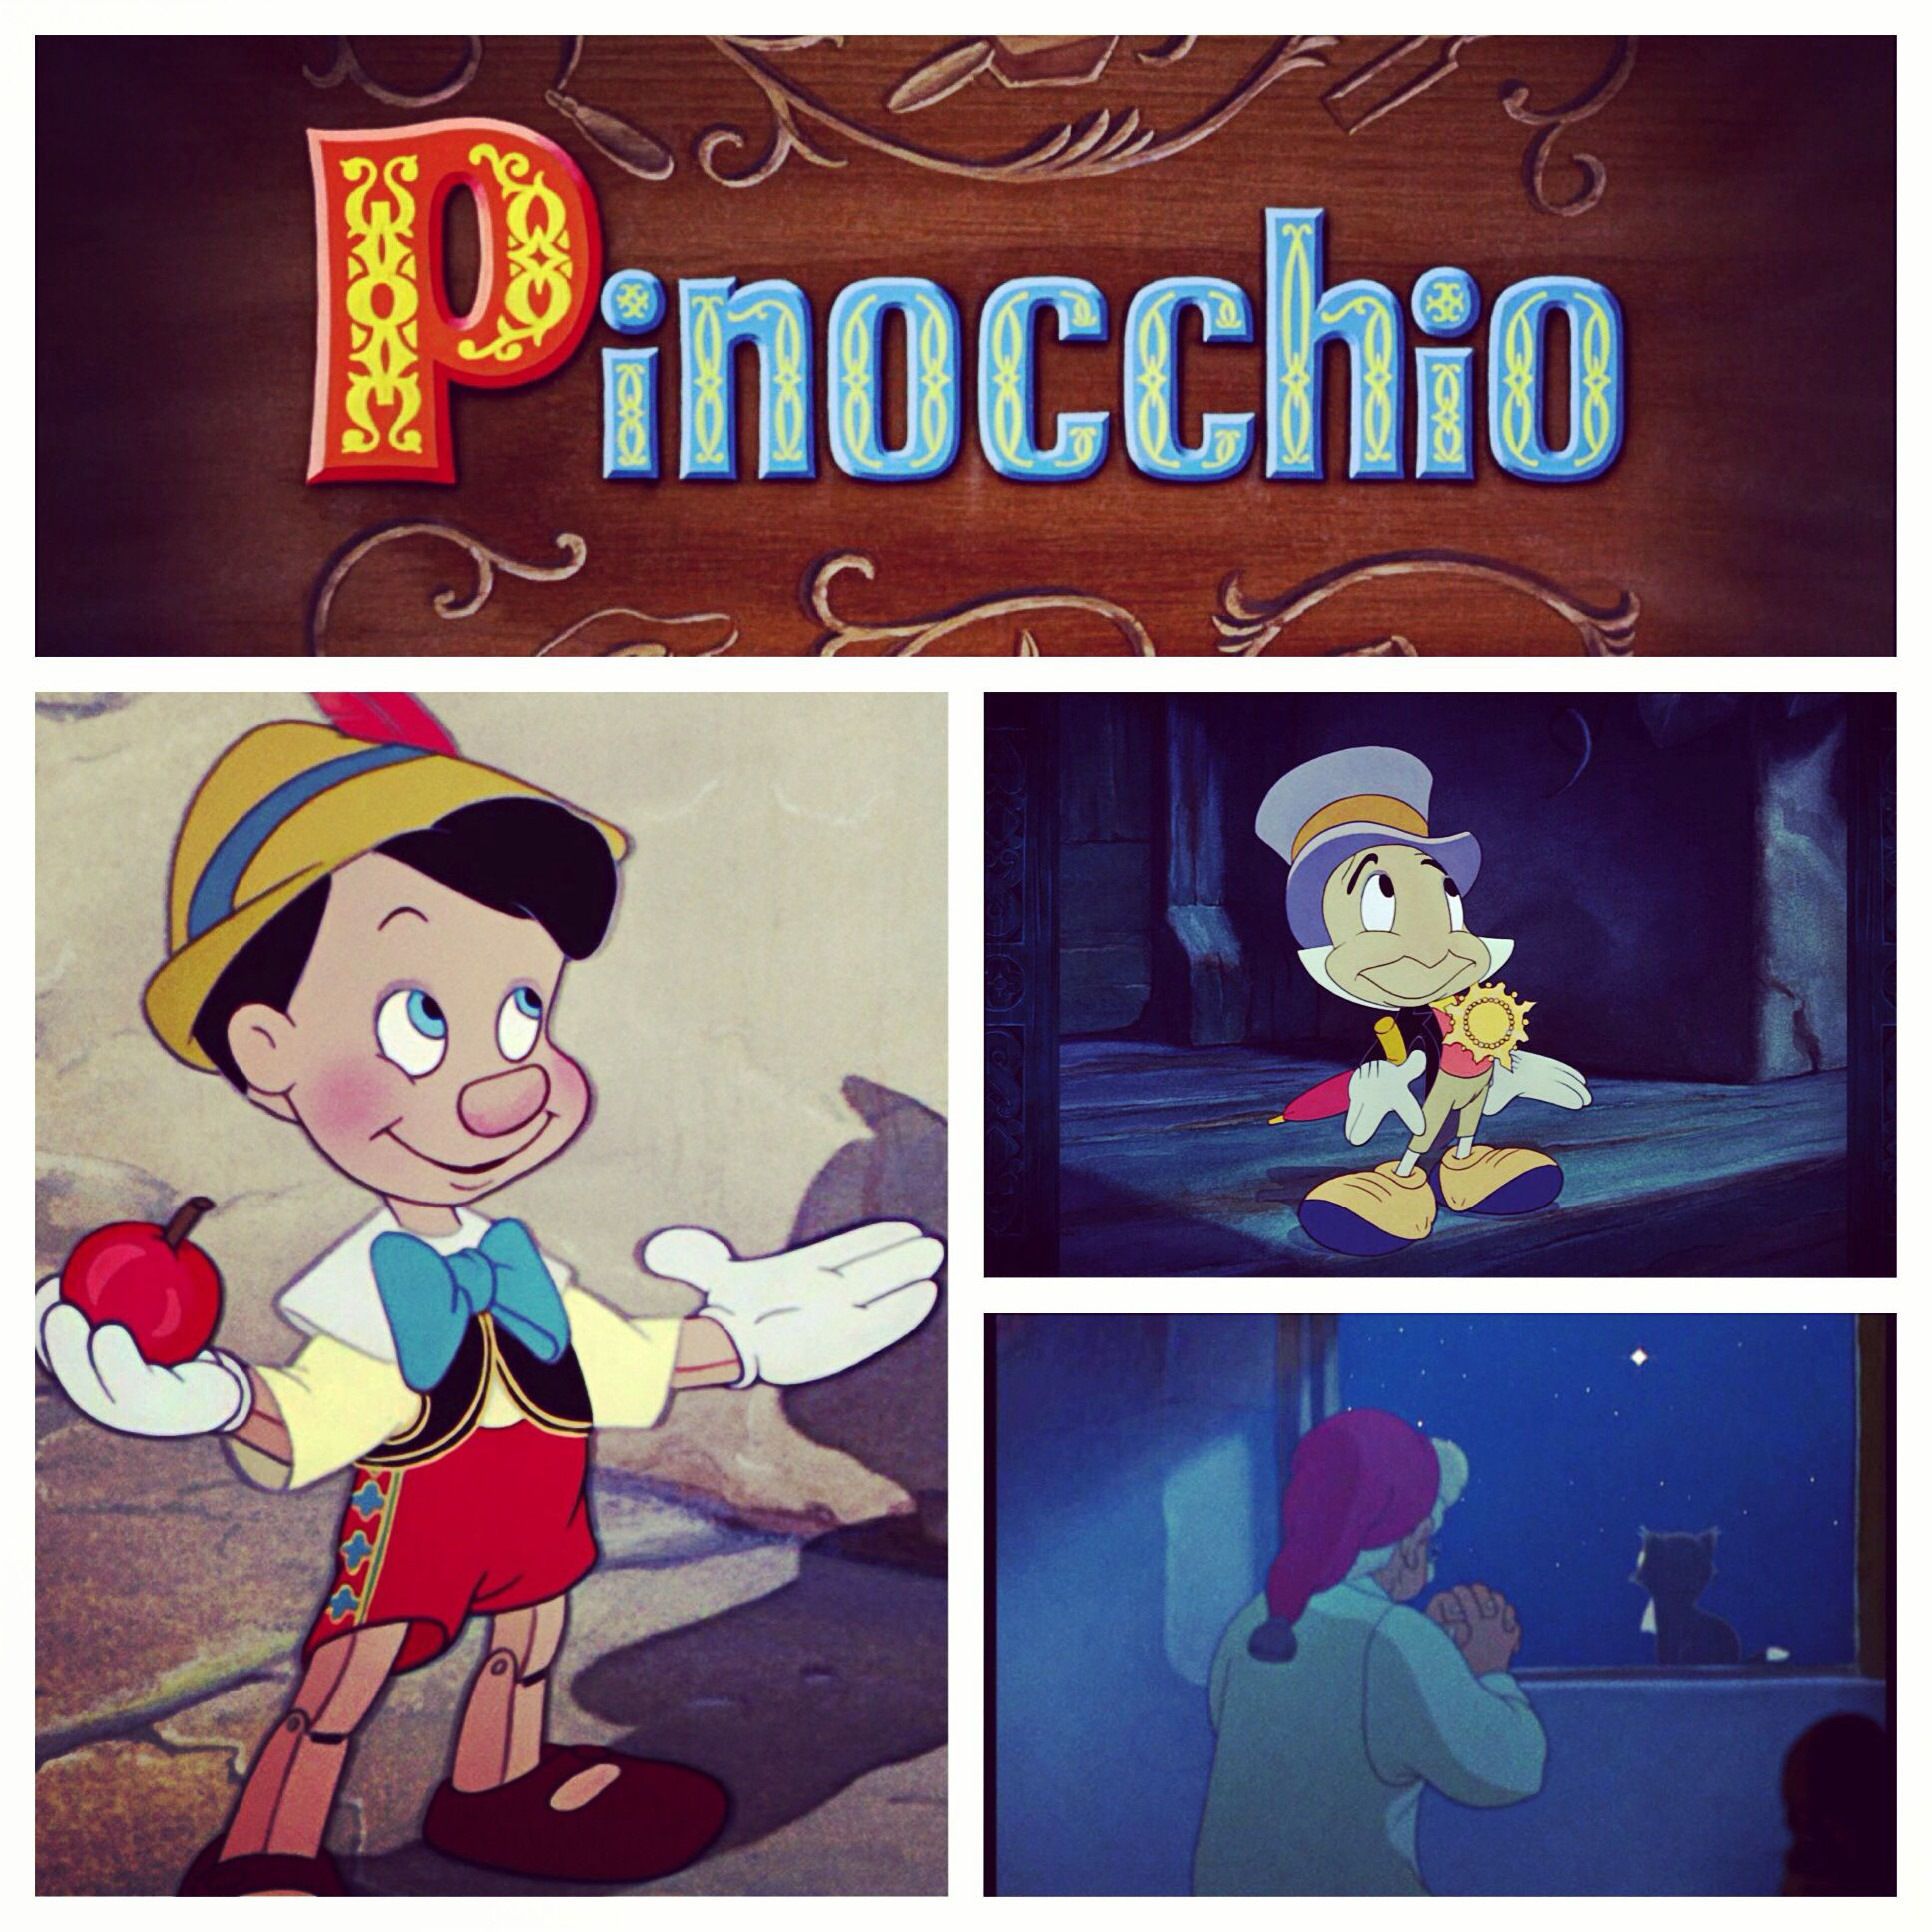 I Can T Wait To Record When You Wish Upon A Star From One Of My Favorite Disney Movies Pinocchio Puppet Jiminycricket G Blue Fairy Disney Carlo Collodi